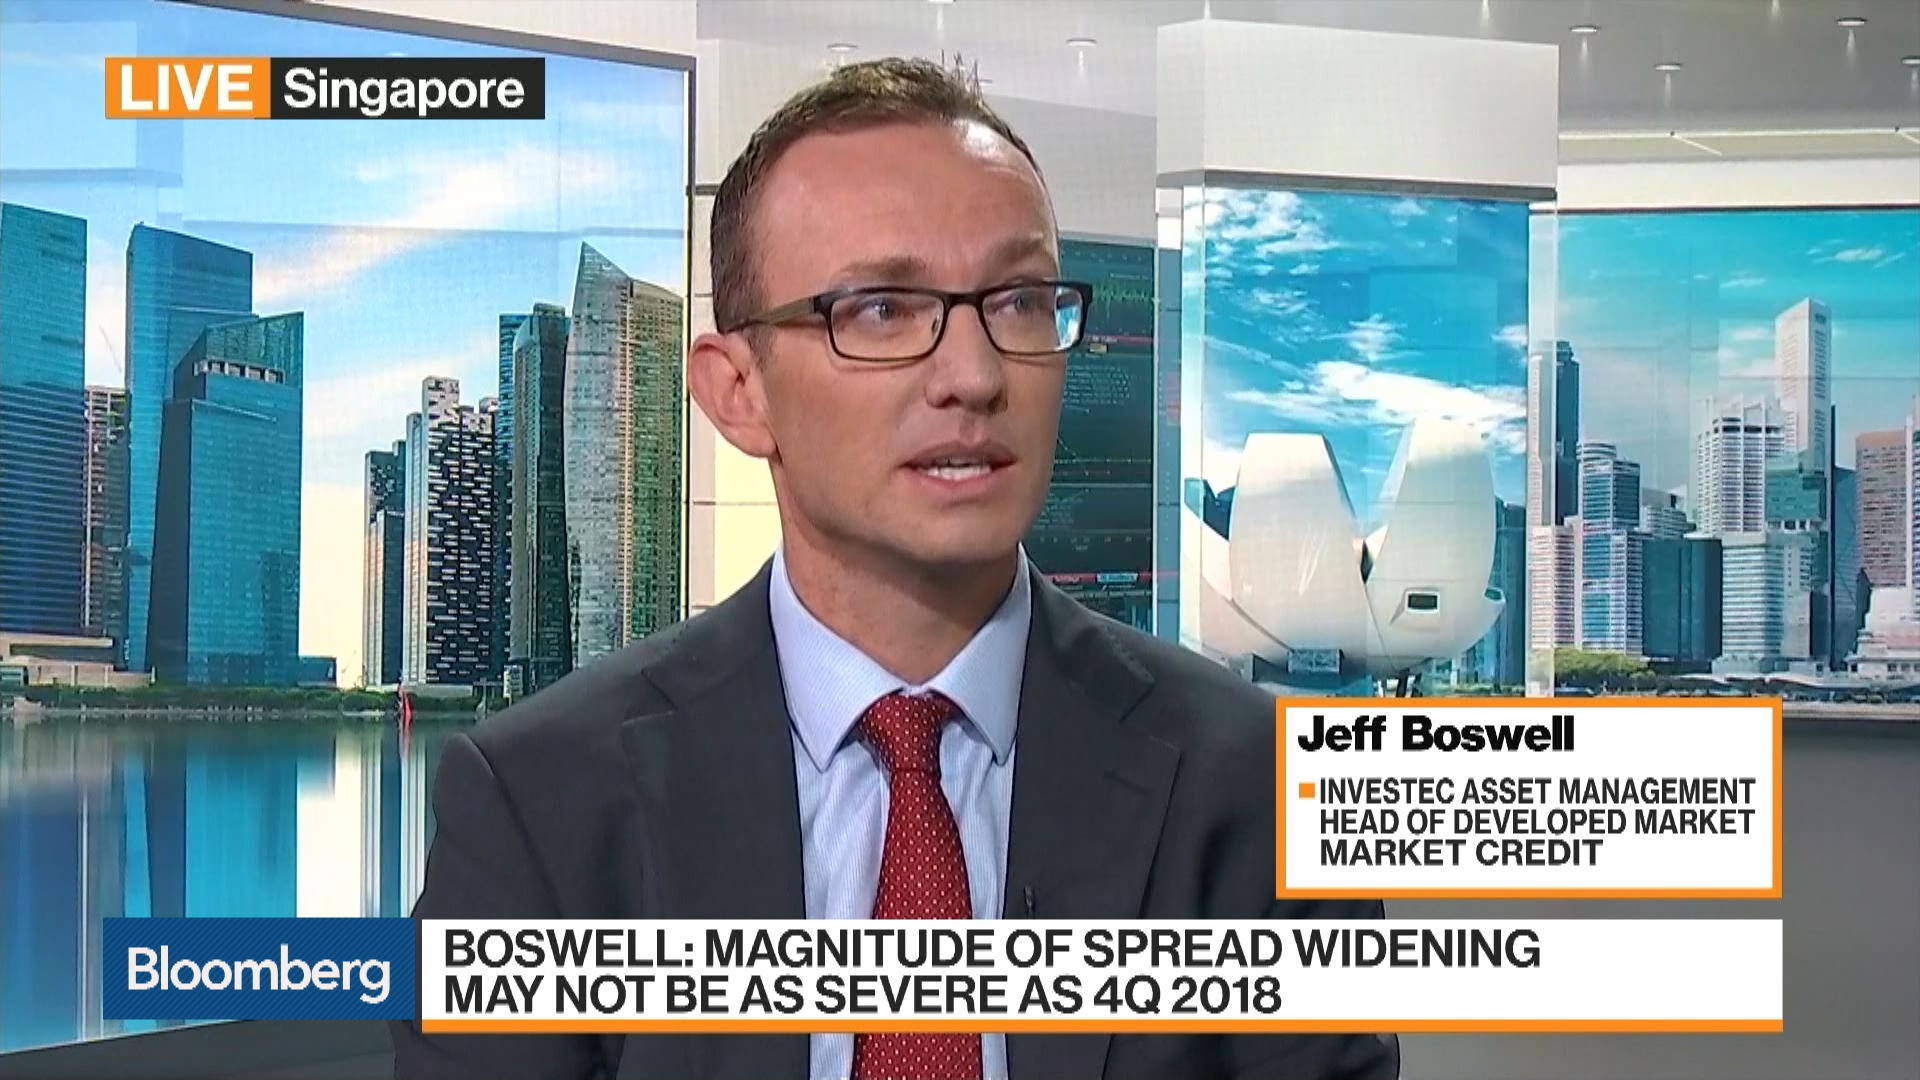 Jeff Boswell, Head of Developed Market Credit at Investec Asset Management, on ECB, Brexit